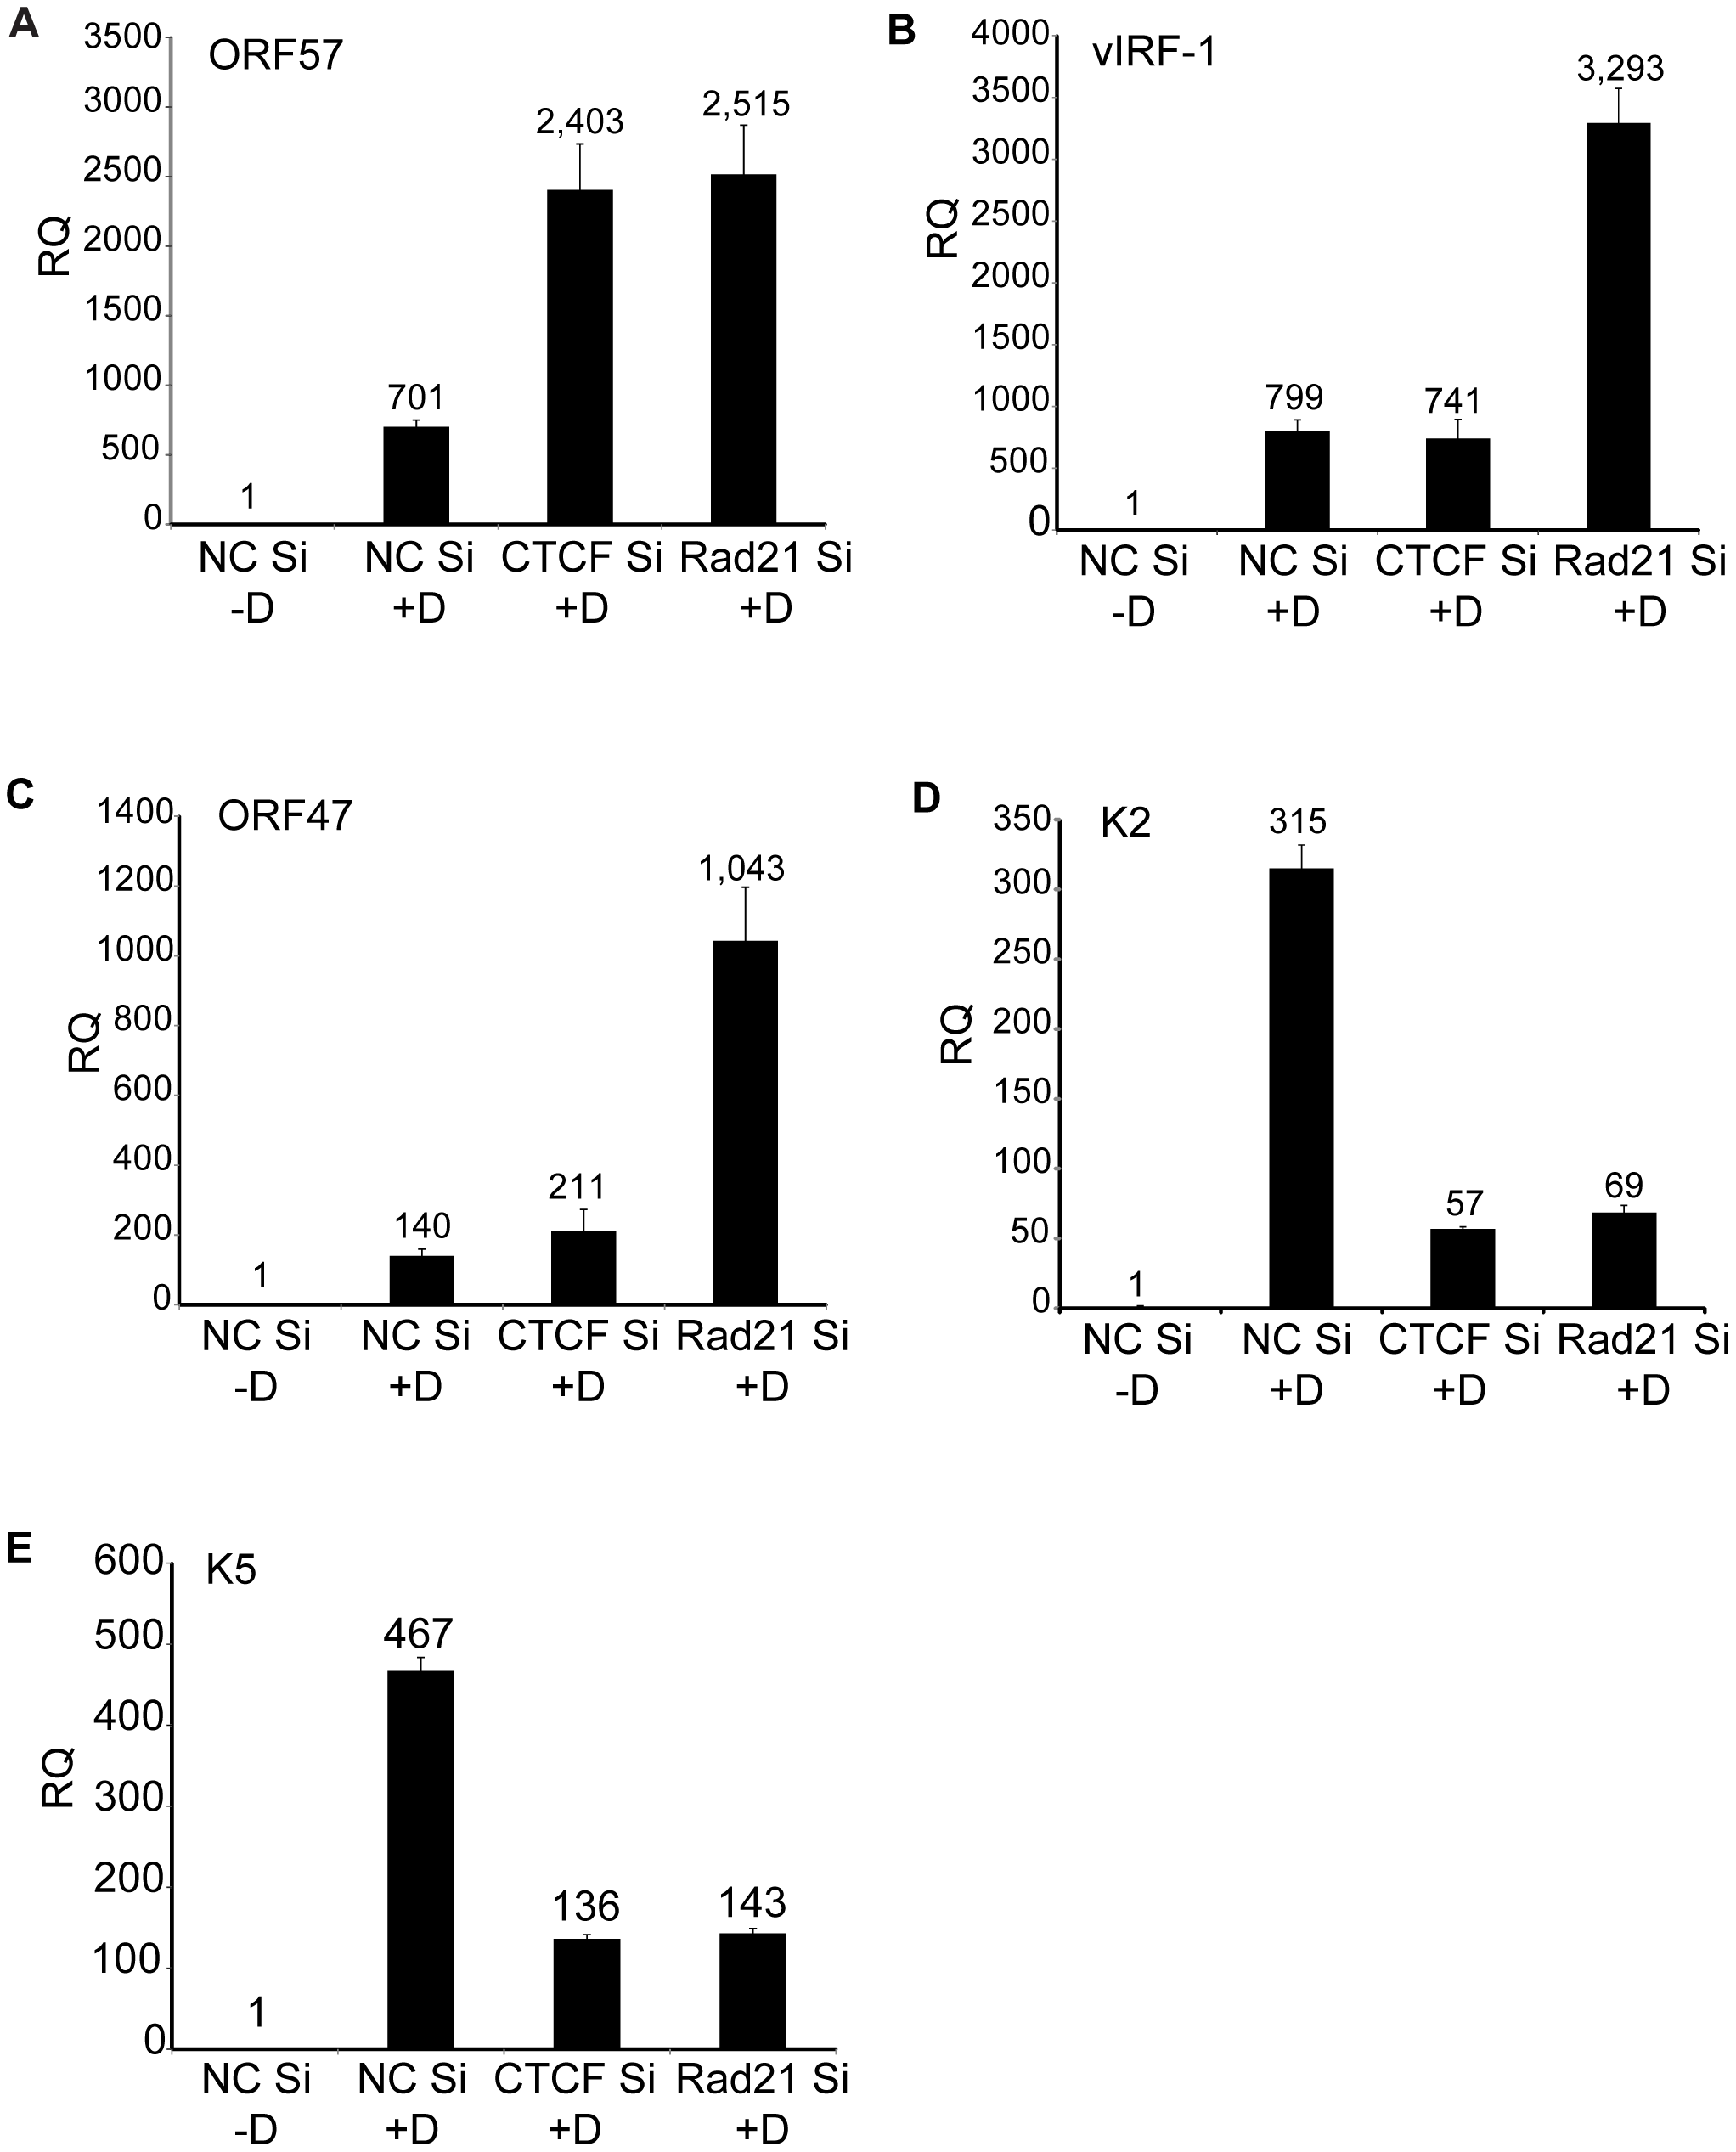 Effects of Rad21 or CTCF knockdown on expression of specific KSHV genes.